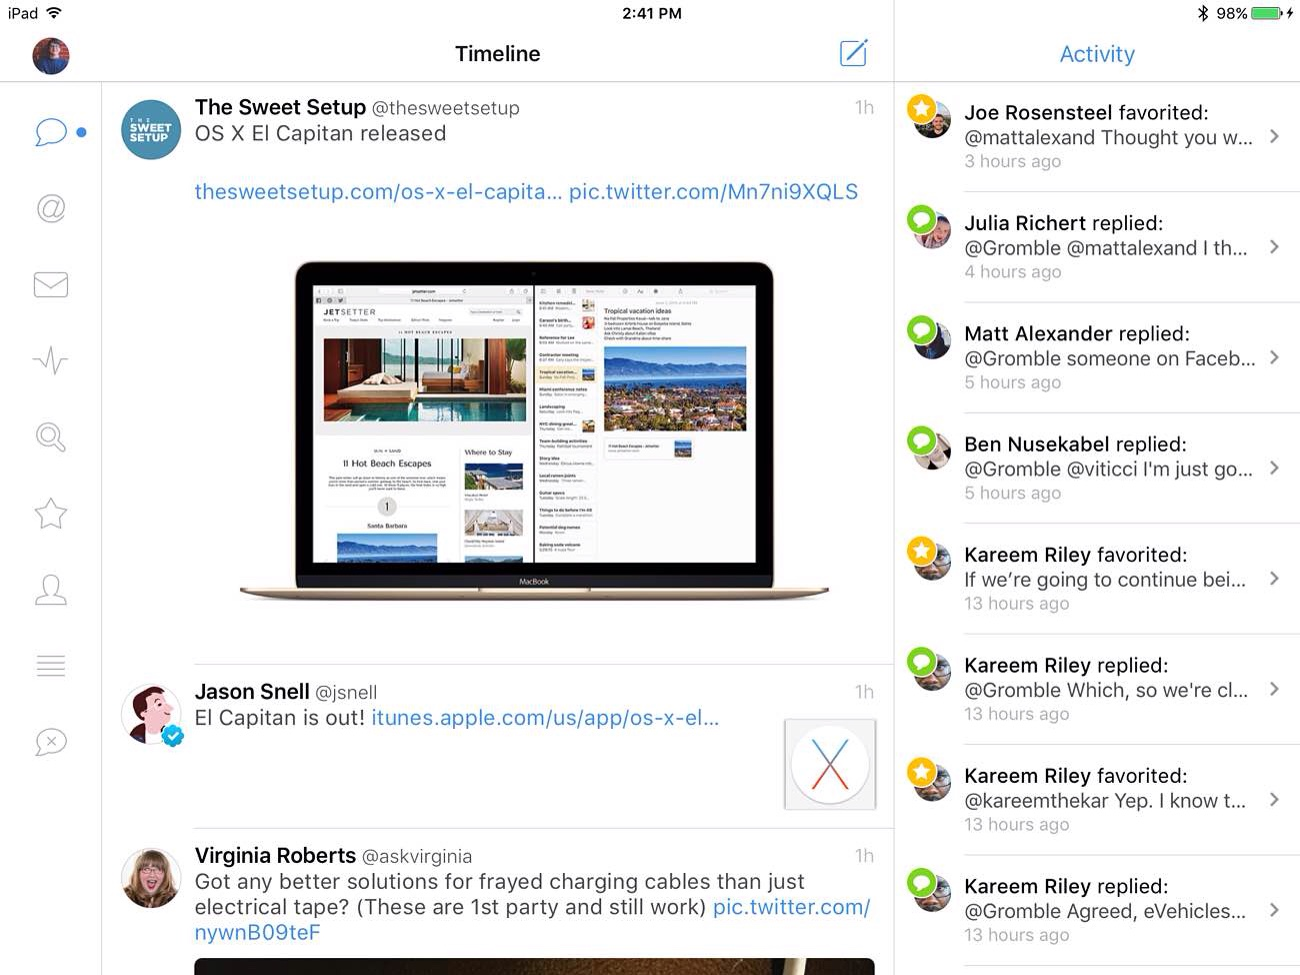 tweetbot-4-ipad-timeline-light